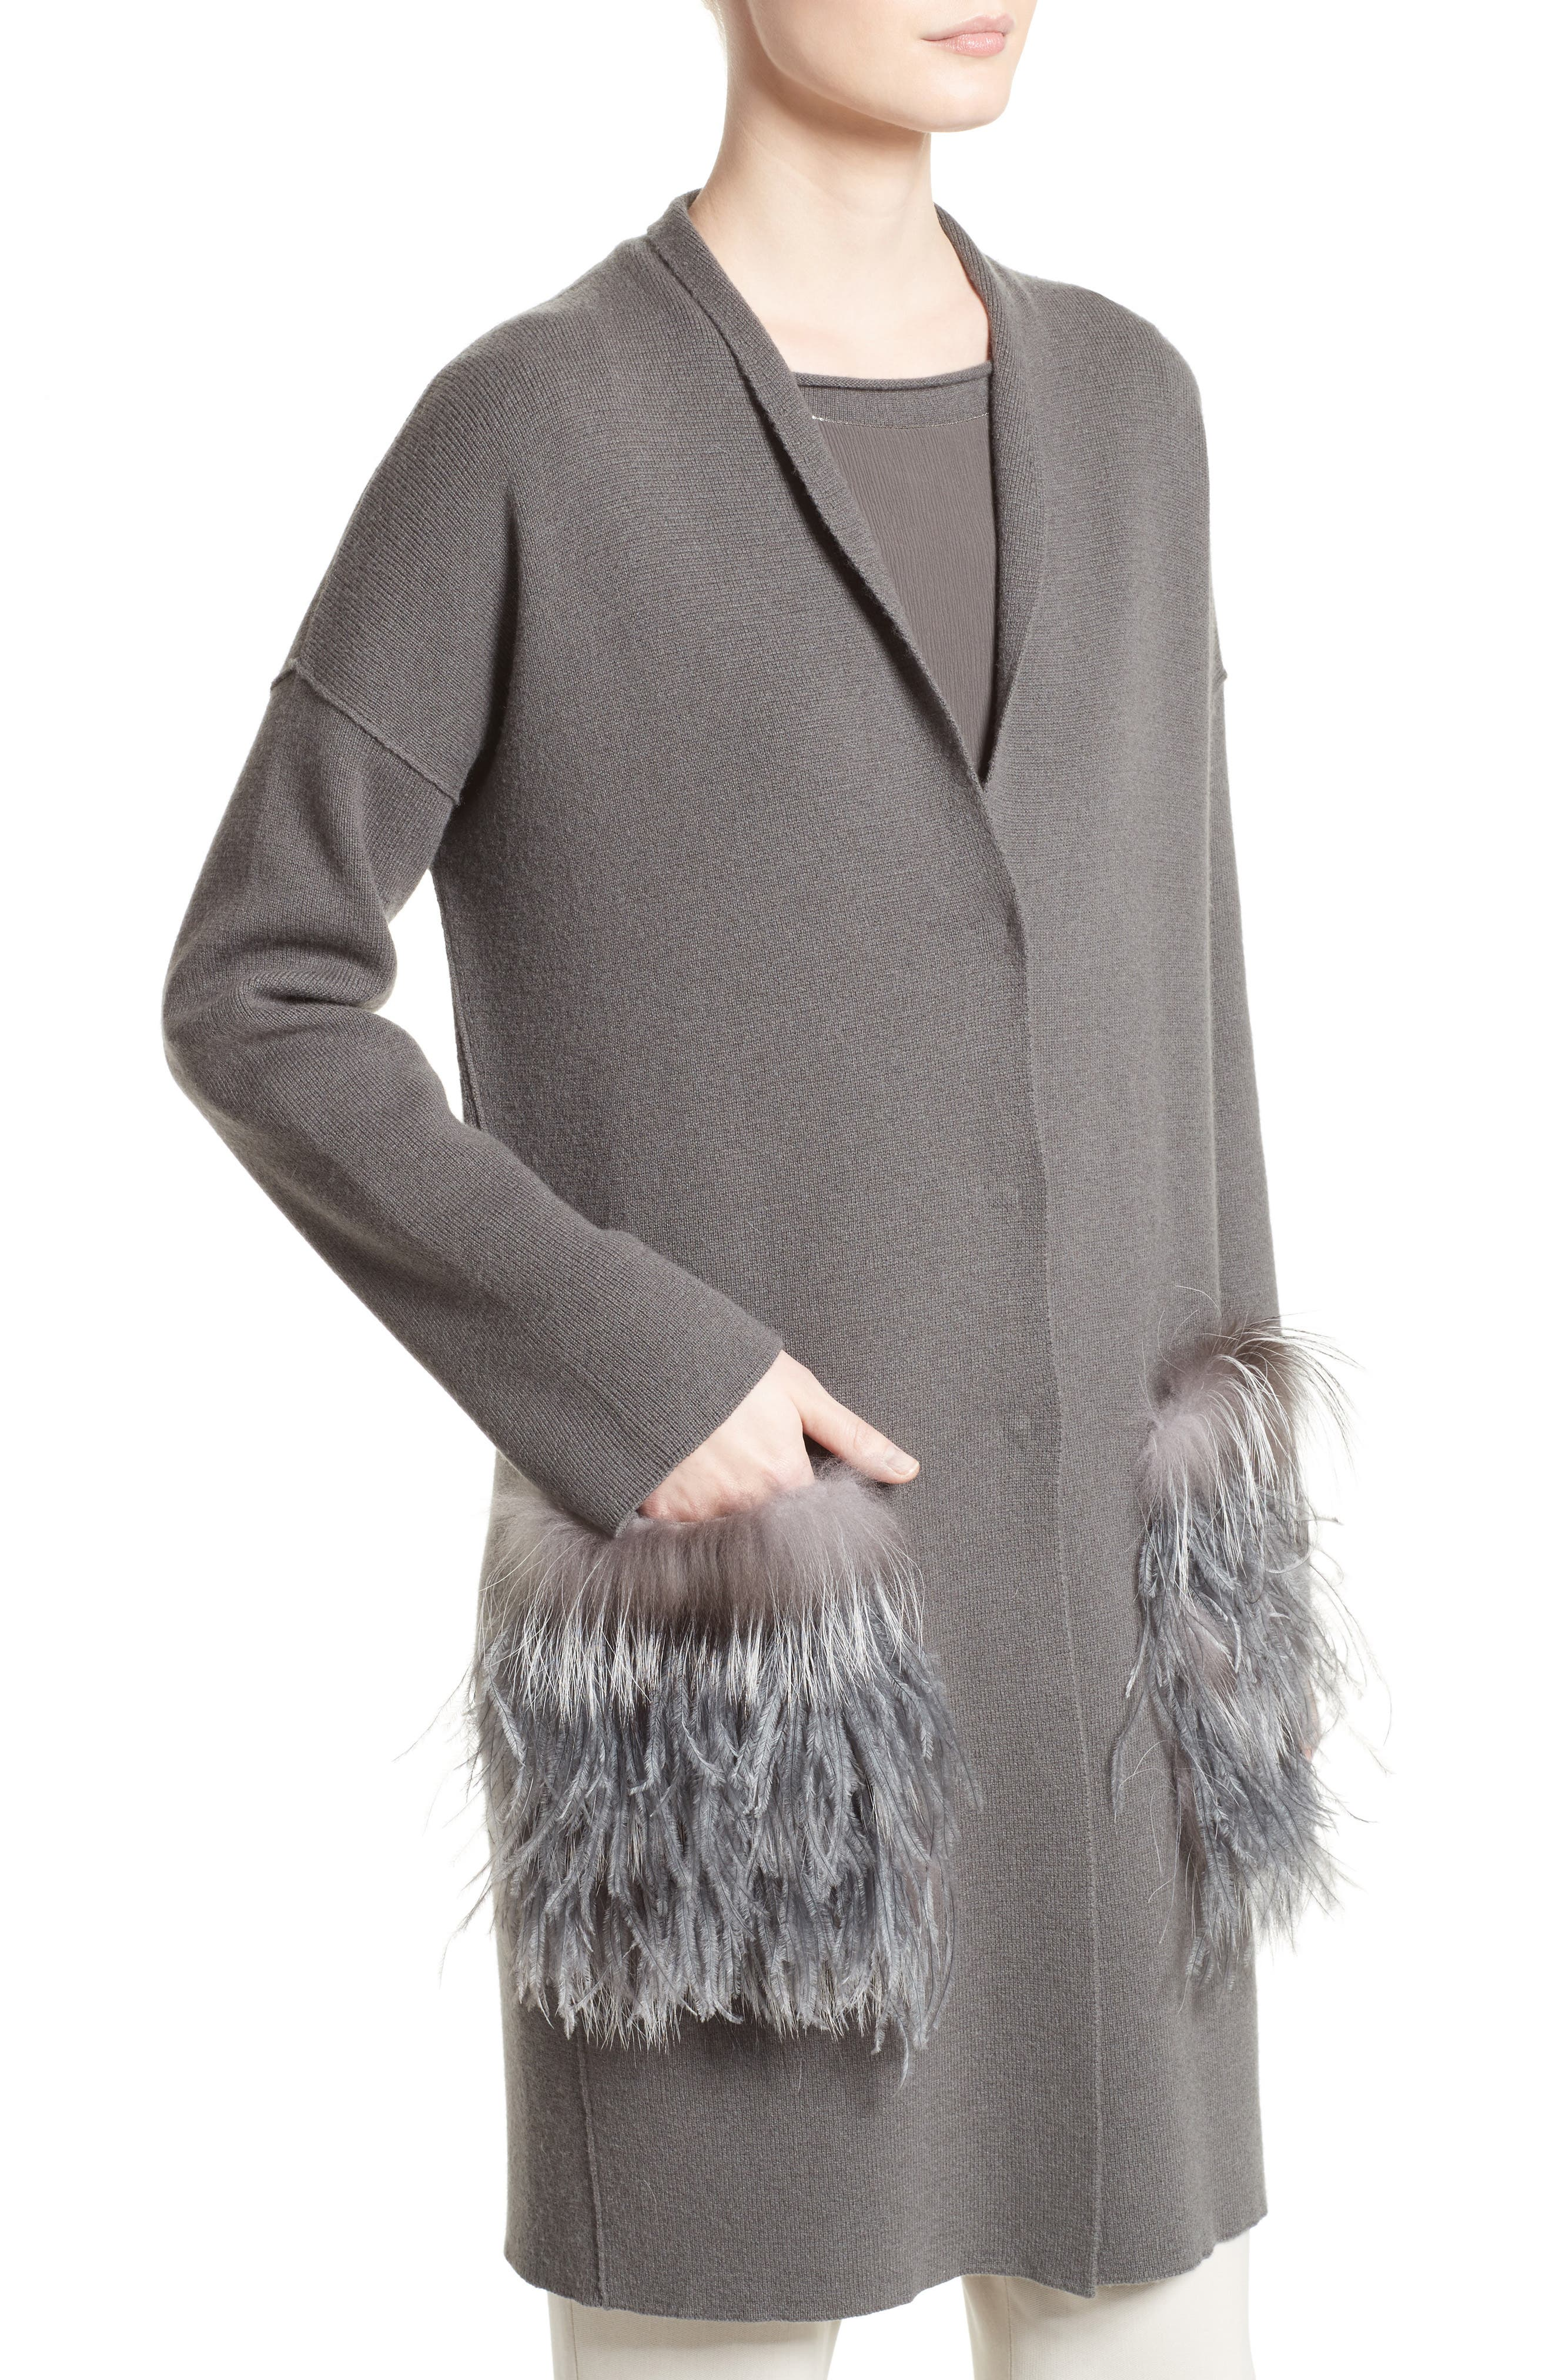 Wool, Silk & Cashmere Cardigan with Genuine Fox Fur & Ostrich Feather Trim,                             Alternate thumbnail 4, color,                             021